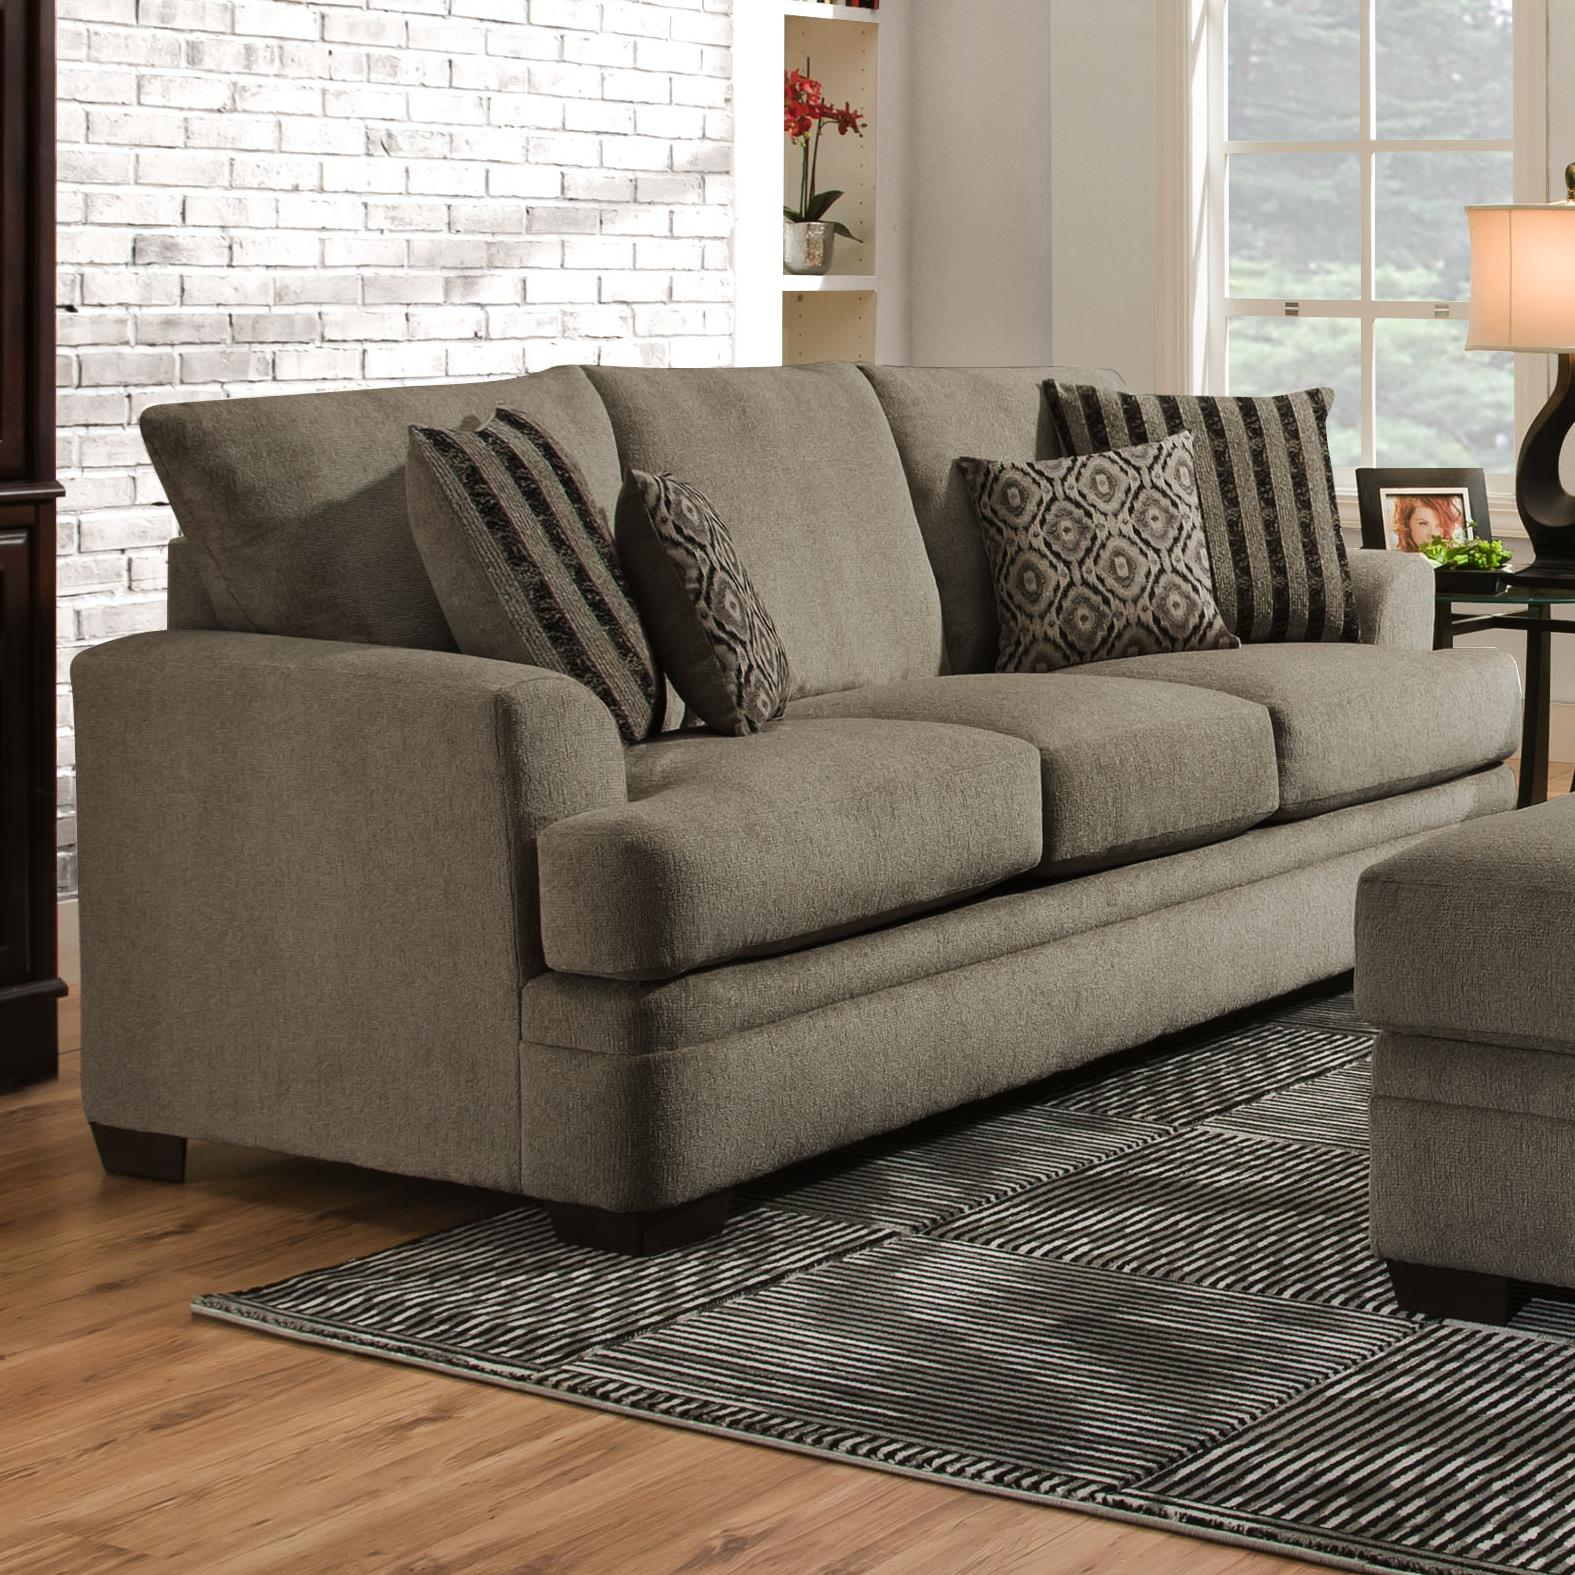 3650 Queen Sofa Sleeper by Peak Living at Prime Brothers Furniture